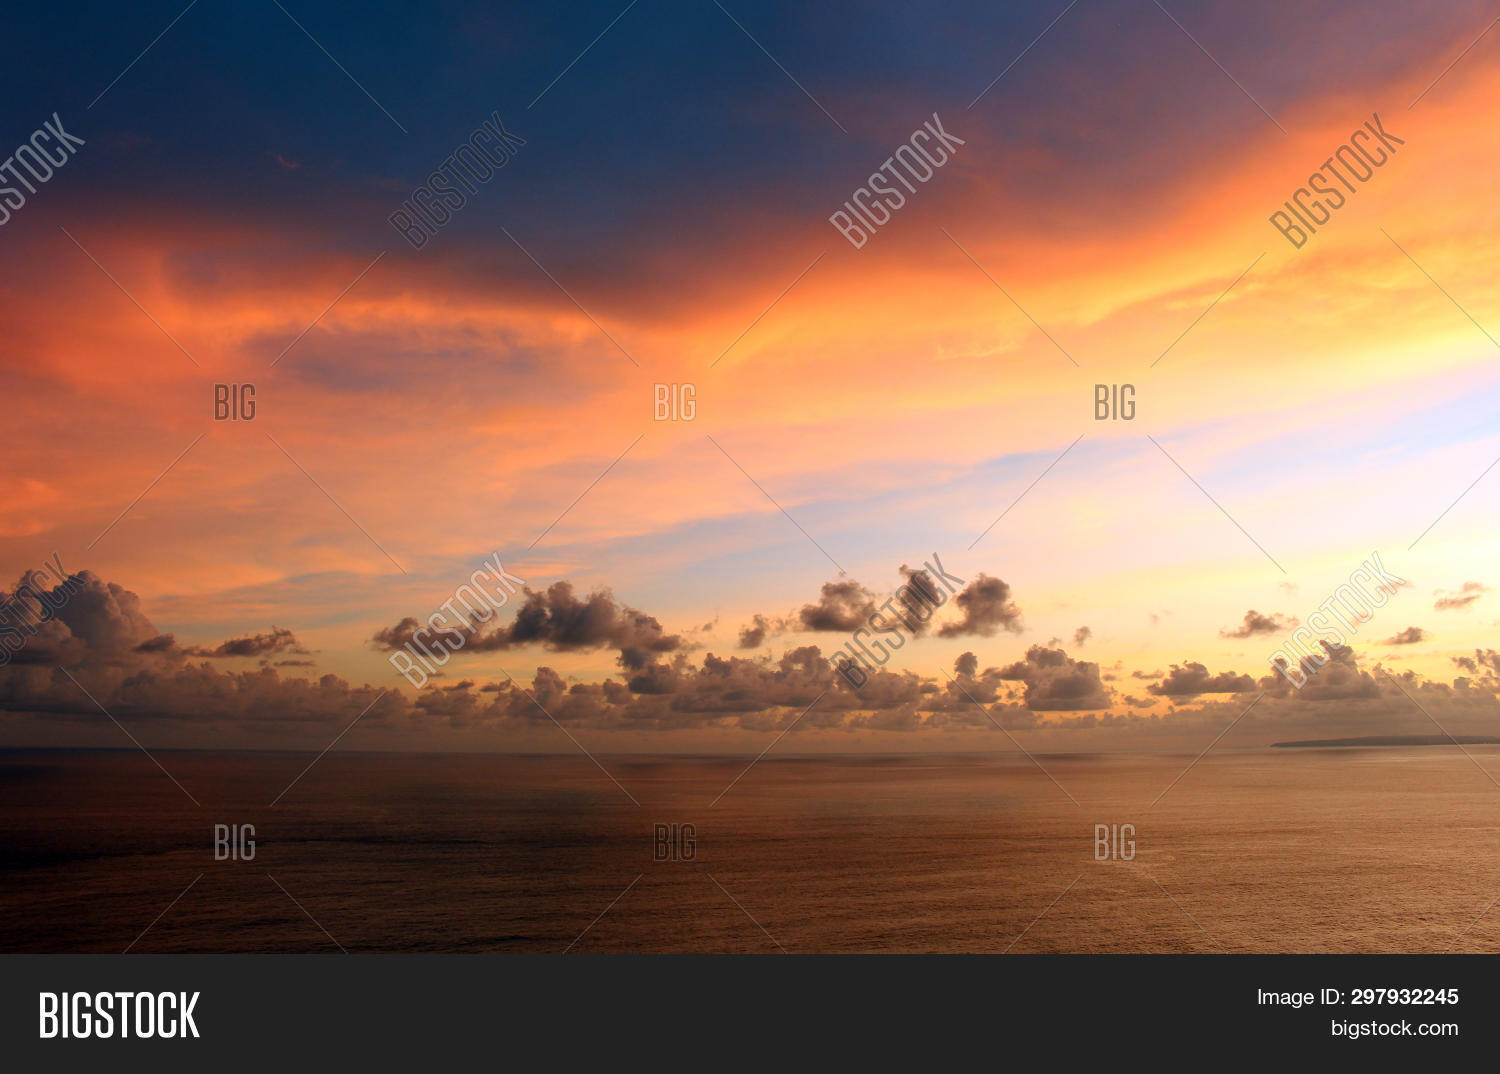 abstract,air,atmosphere,background,beach,blue,bright,clear,climate,clouds,color,day,dramatic,fantastic,freedom,golden,heavens,high,horizon,landscape,light,natural,nature,ocean,orange,outdoors,overcast,scenic,sea,sky,sky-background,sky-clouds,sky-landscape,sky-nature,sky-scene,sky-view,space,summer,sundown,sunlight,sunny,sunrise,sunset,sunshine,vast,vast-sky,view,weather,white,yellow